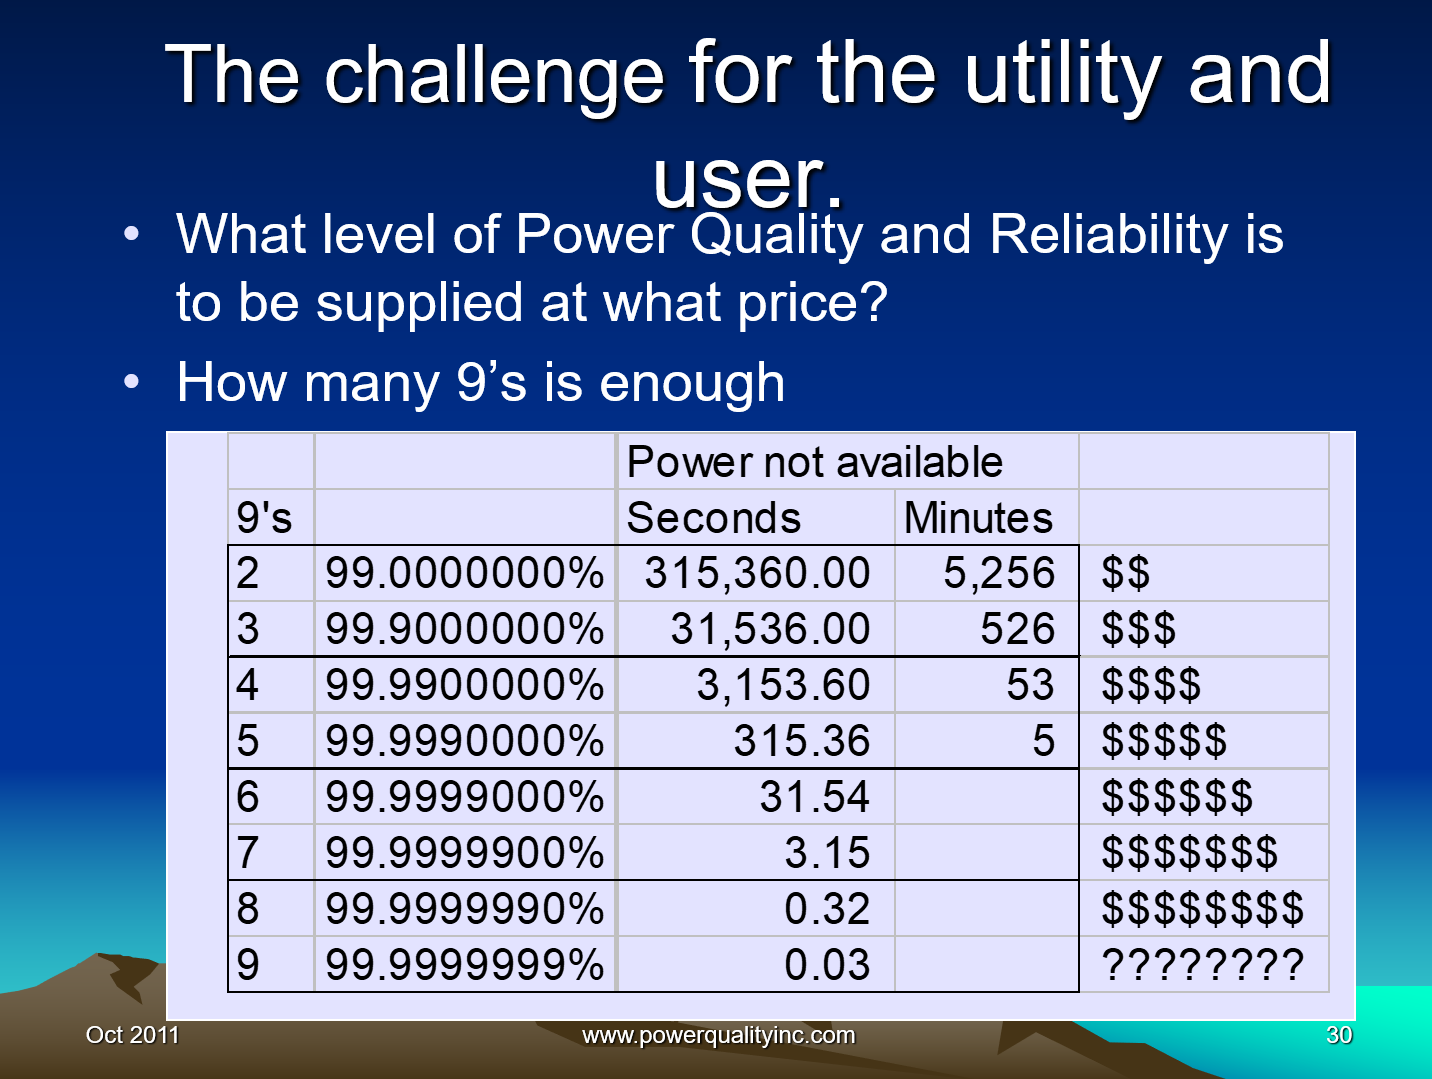 Power Quality the Economic Challenge for Utilities and Users_30